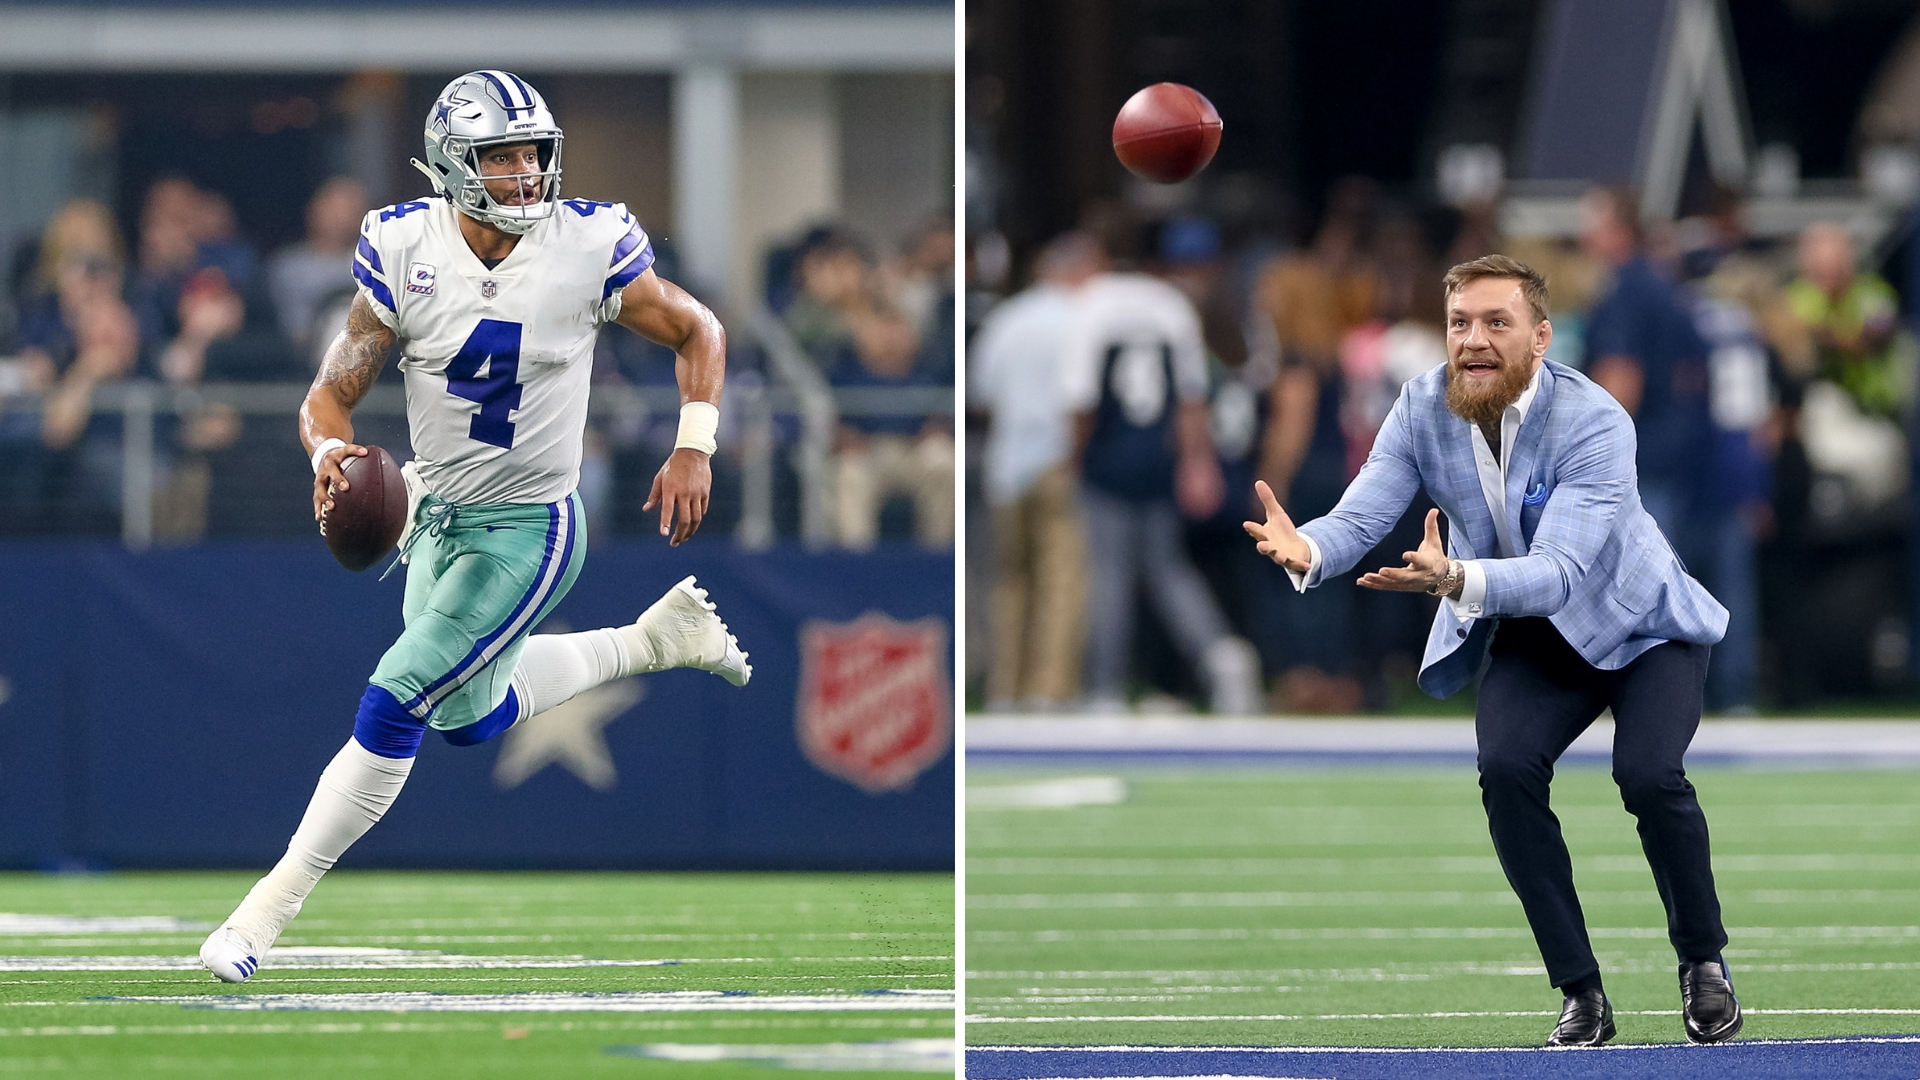 Conor McGregor's Hilarious Response To His Terrible Throw At Dallas Cowboys' Match